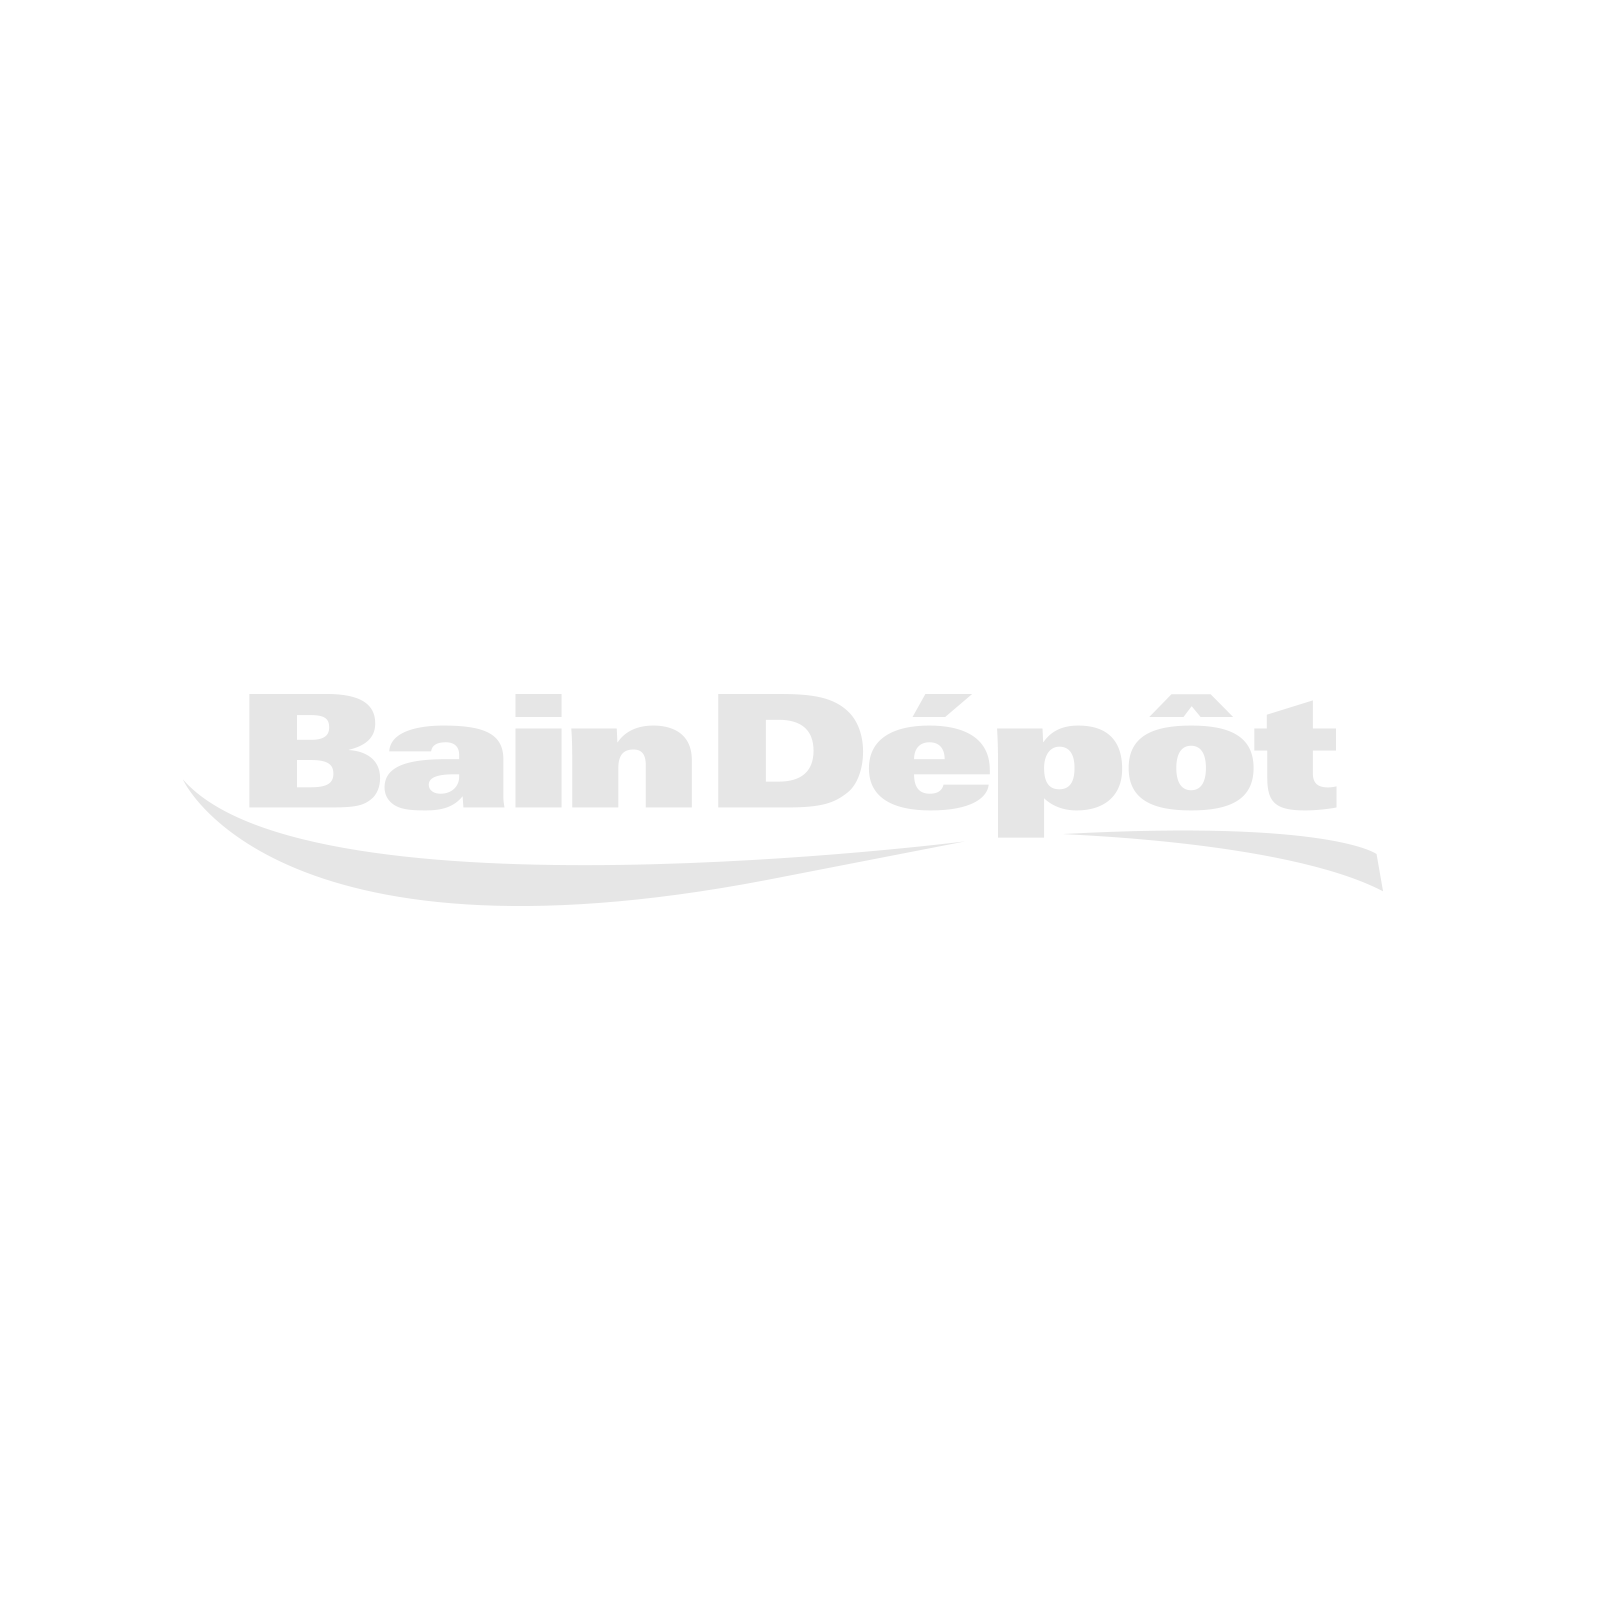 METRO extendable aluminum kitchen sink caddy